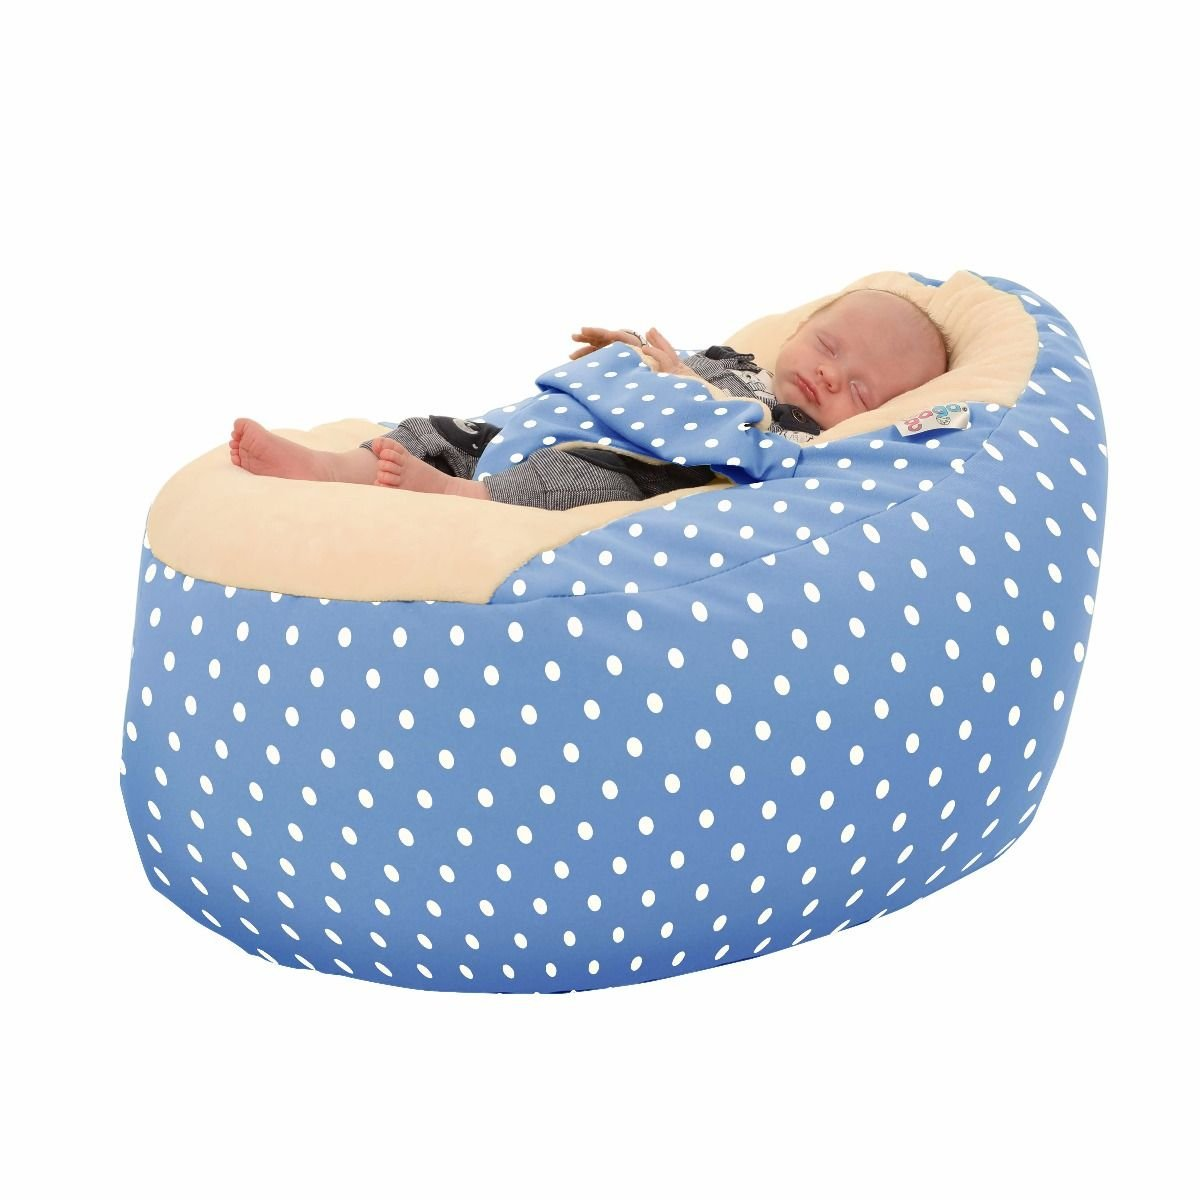 Polka Dot Gaga+ Baby to Junior Beanbag (Baby Pink) rucomfy Bean bags